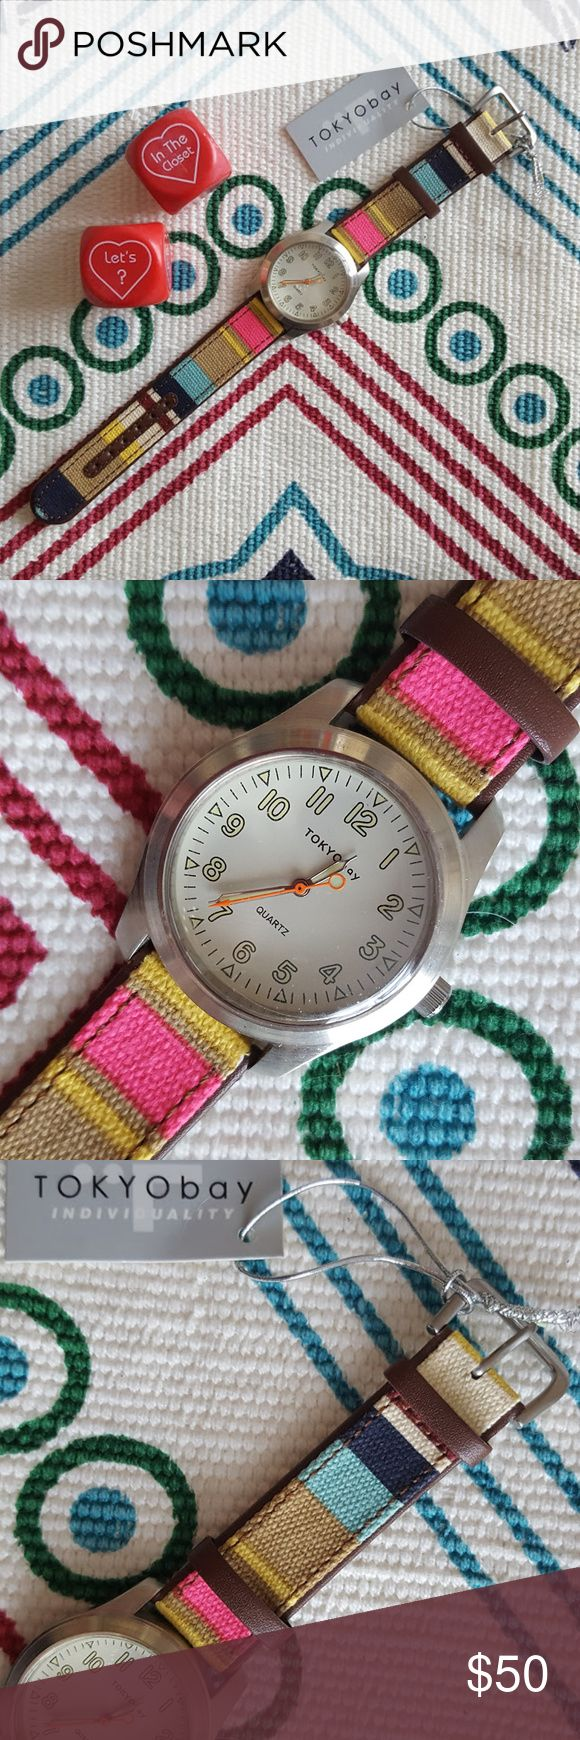 TOKYOBay Watch-Multi Colored Canvas Band Tokyo Bay Watch-Multi Colored Canvas & Genuine Leather Band.  New w/tags.  Plastic protection covering still on watch glass face.  Has been stored, new battery needed. No trades. TOKYObay Accessories Watches